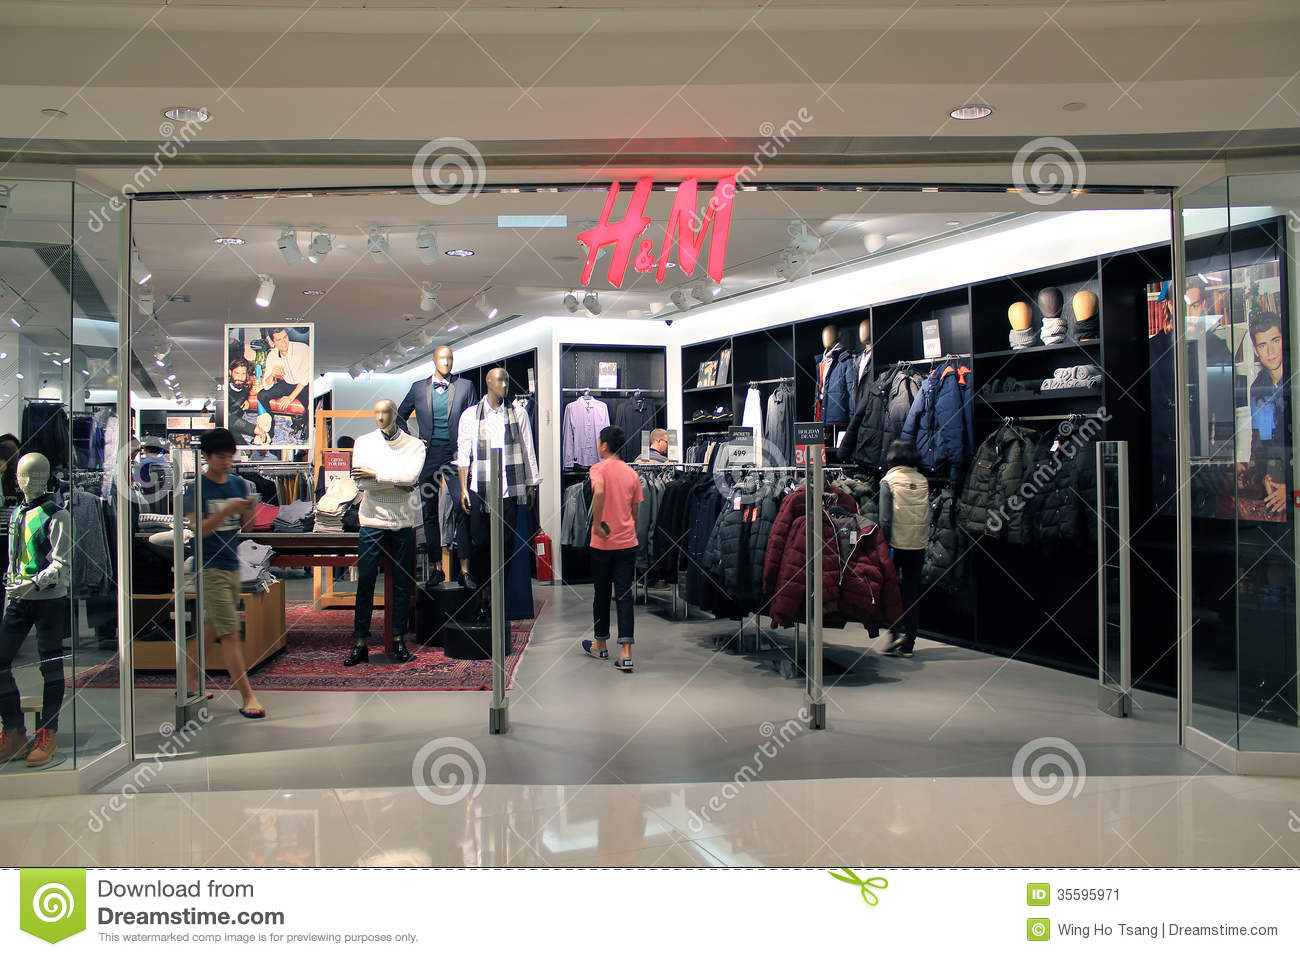 Low resolution photo dont download editorial photo image - H m plaza norte ...